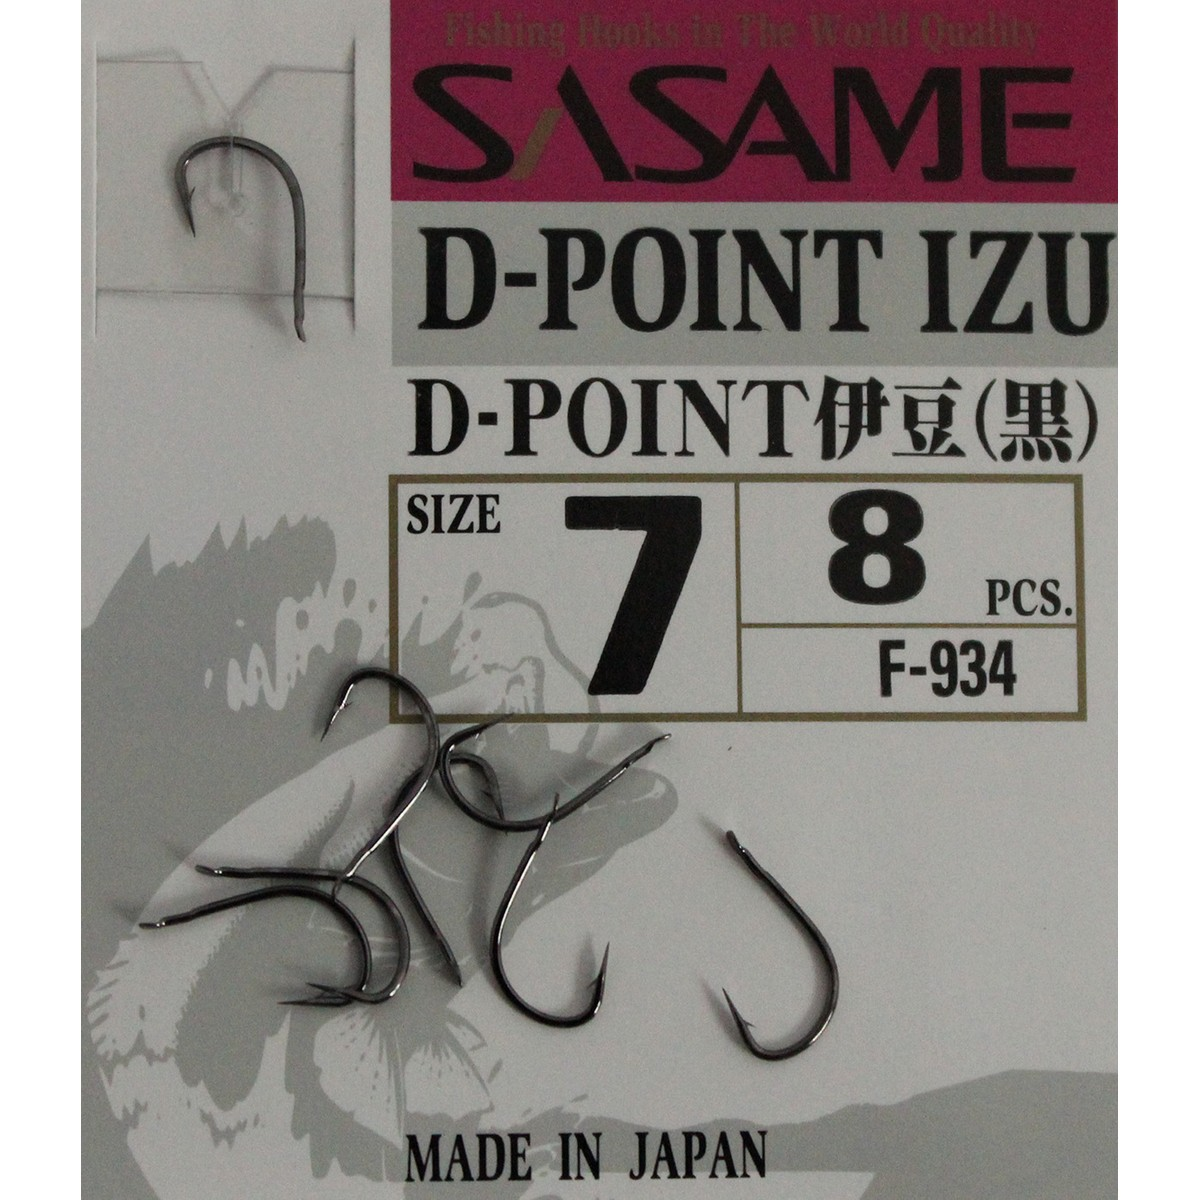 Sasame D-Point Izu F-934